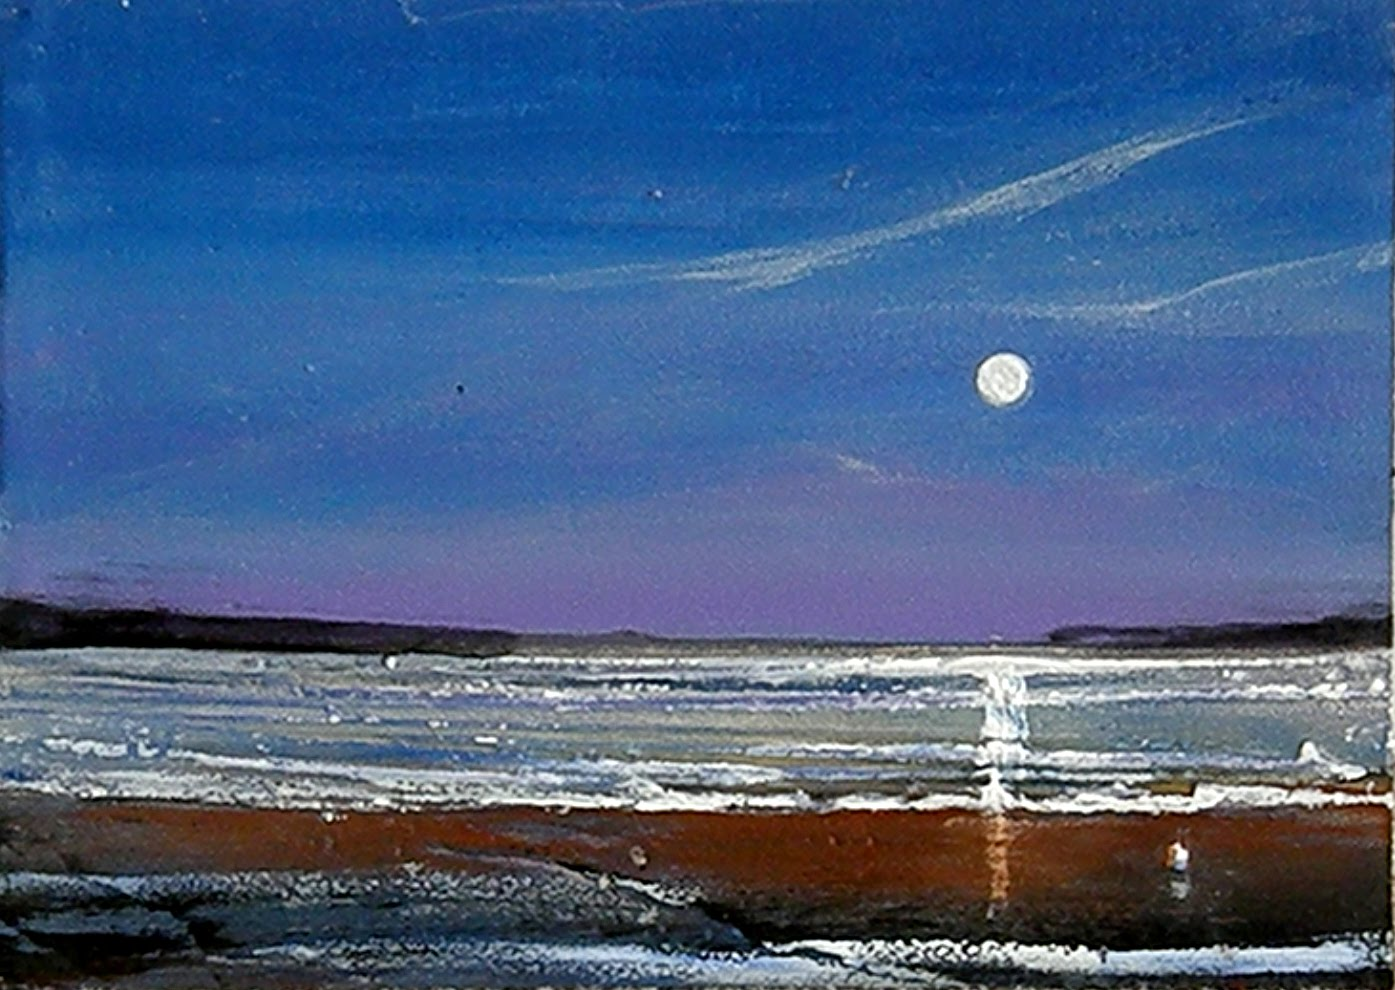 Toni Grote Spiritual Art From My Heart To Yours July 12 Nighttime Beach Person Original Painting